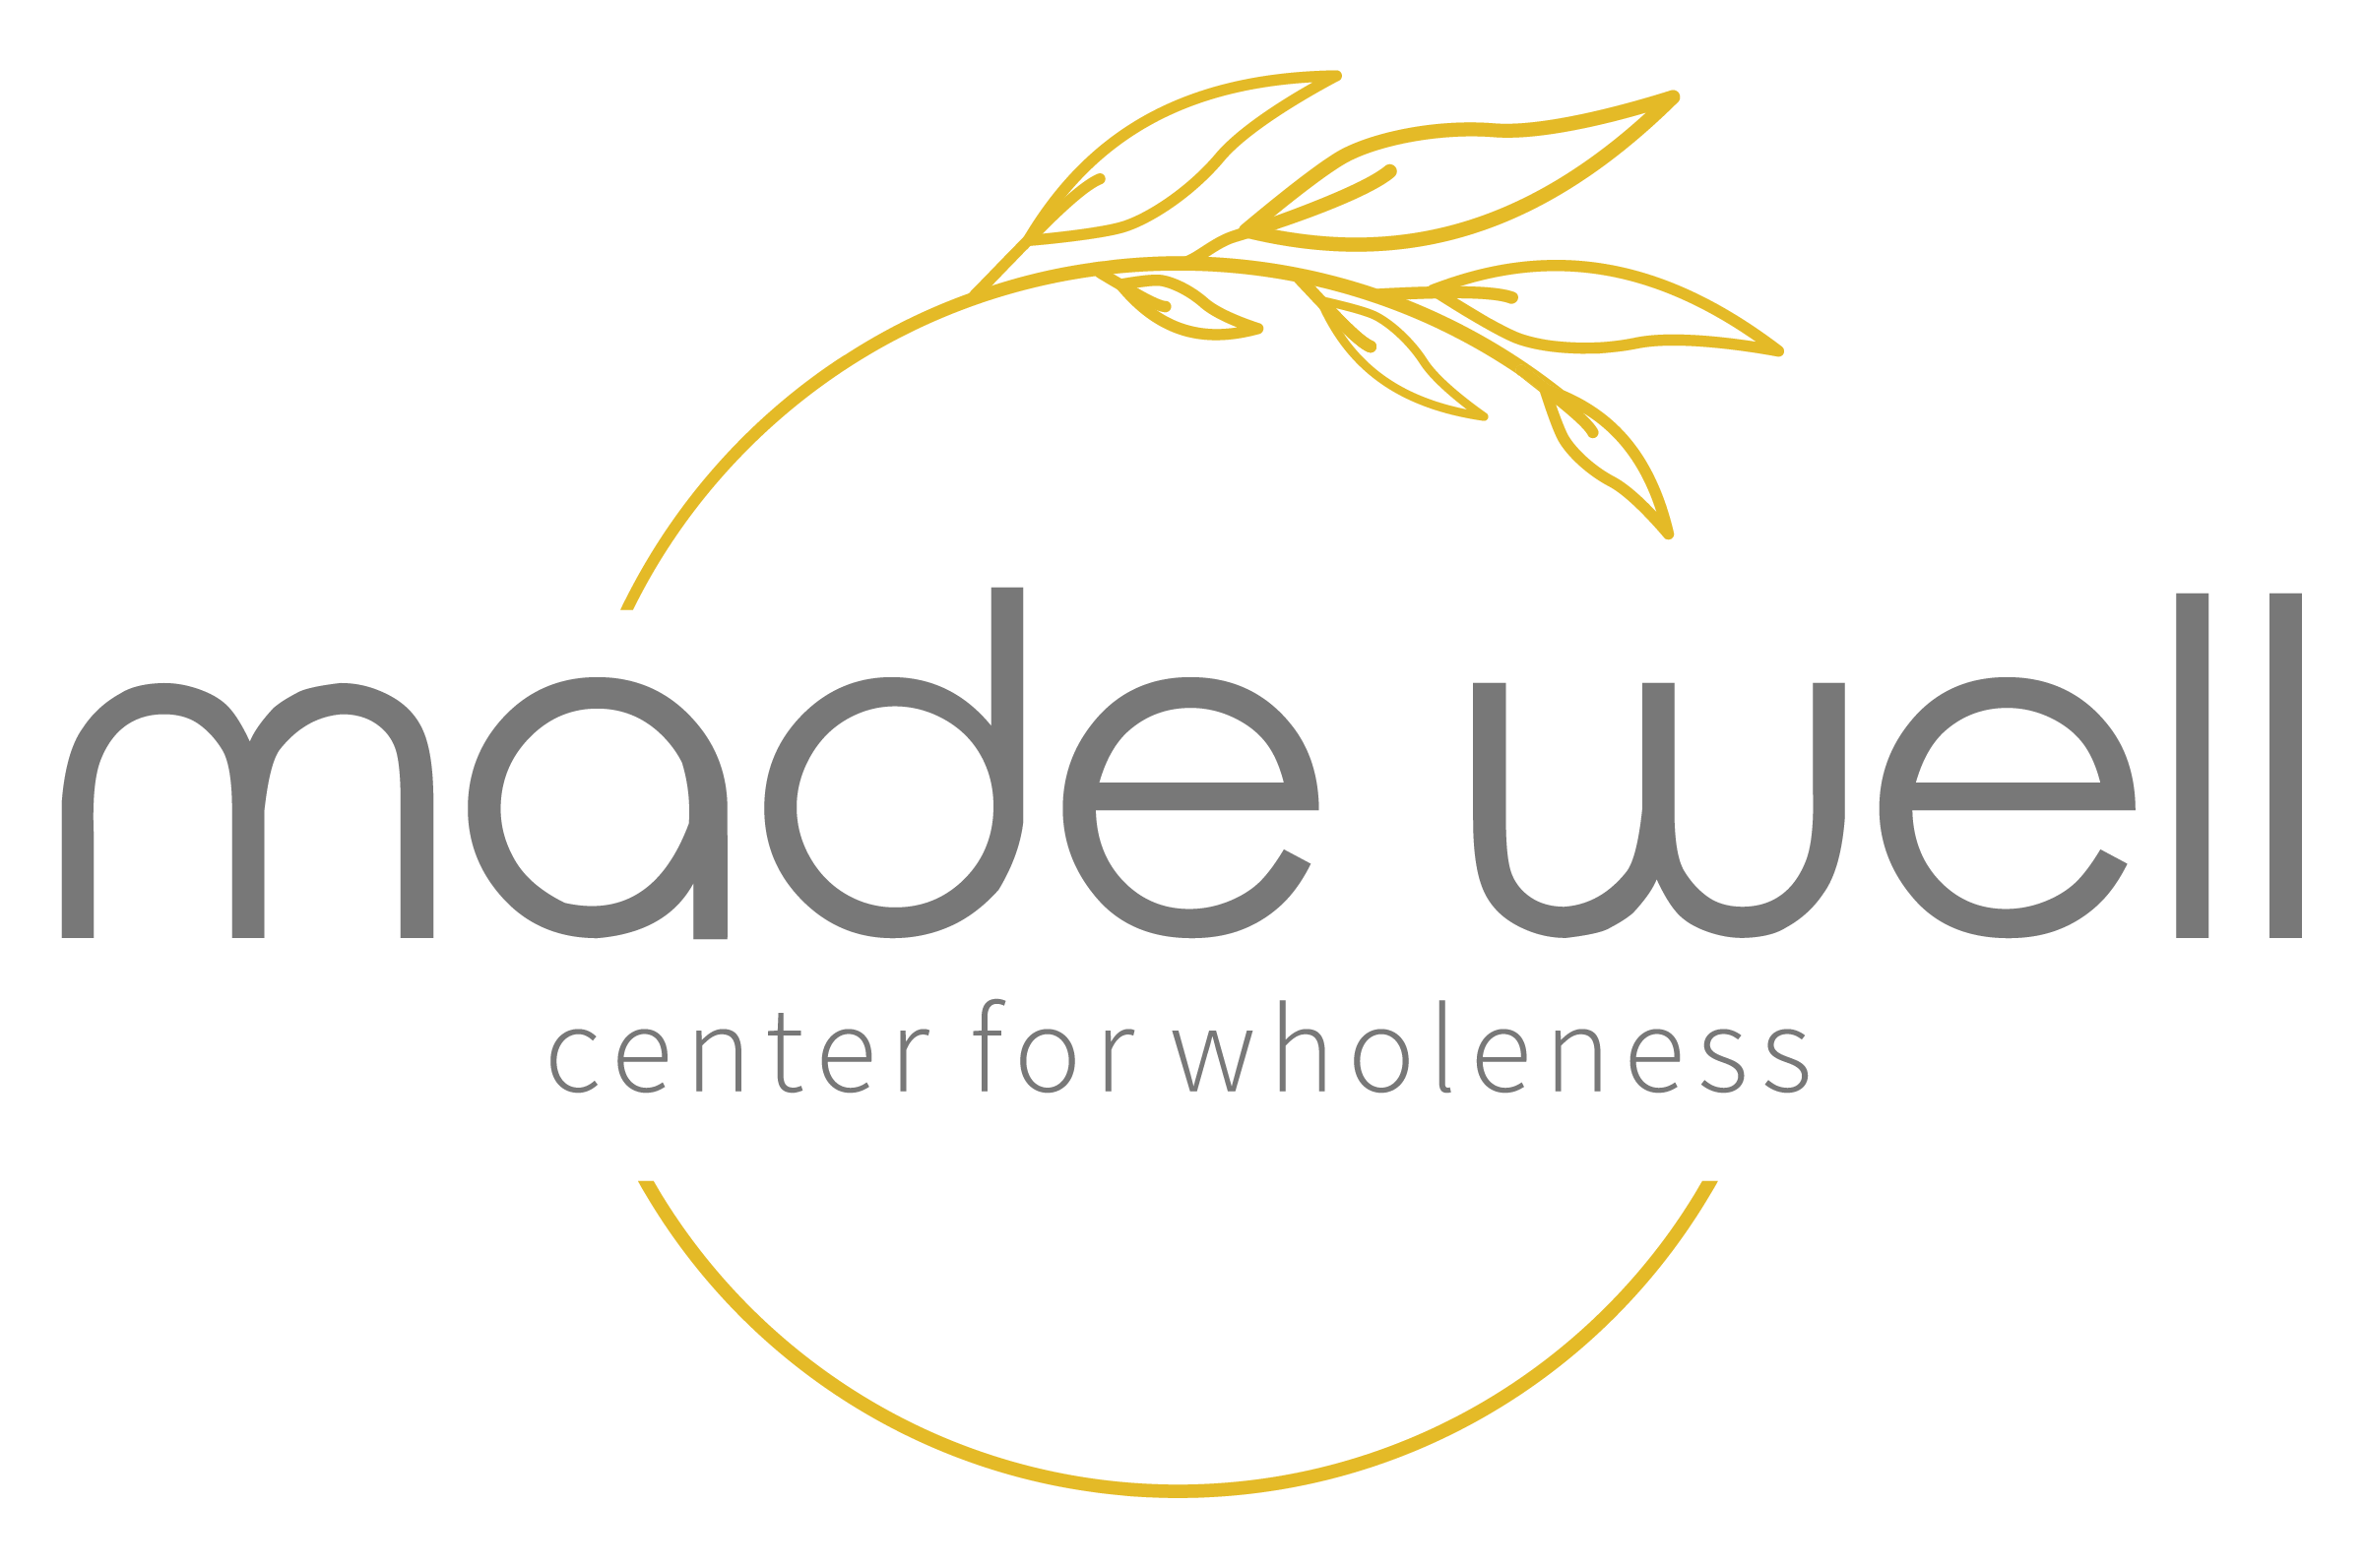 Made Well Center for Wholeness